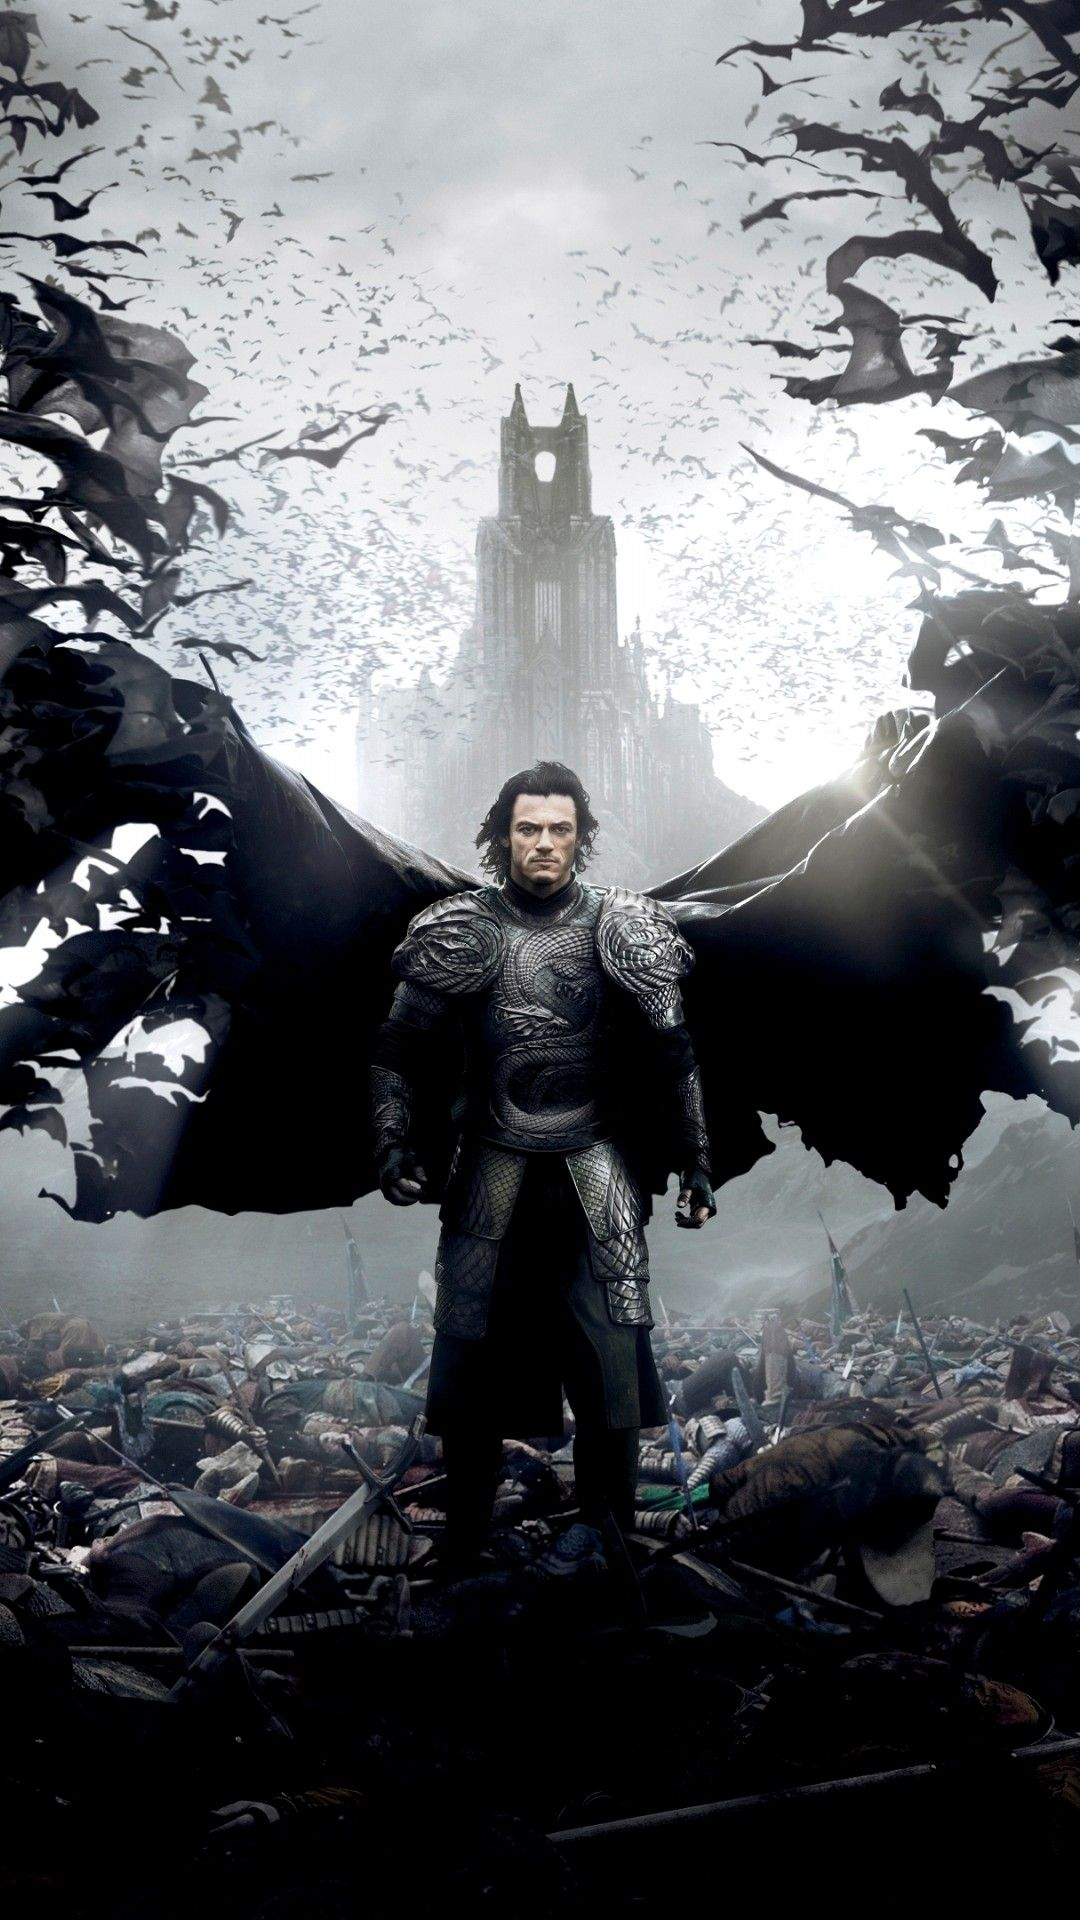 1080x1920 Best 42+ Dracula Untold iPhone Wallpaper on HipWallpaper | Dracula ...